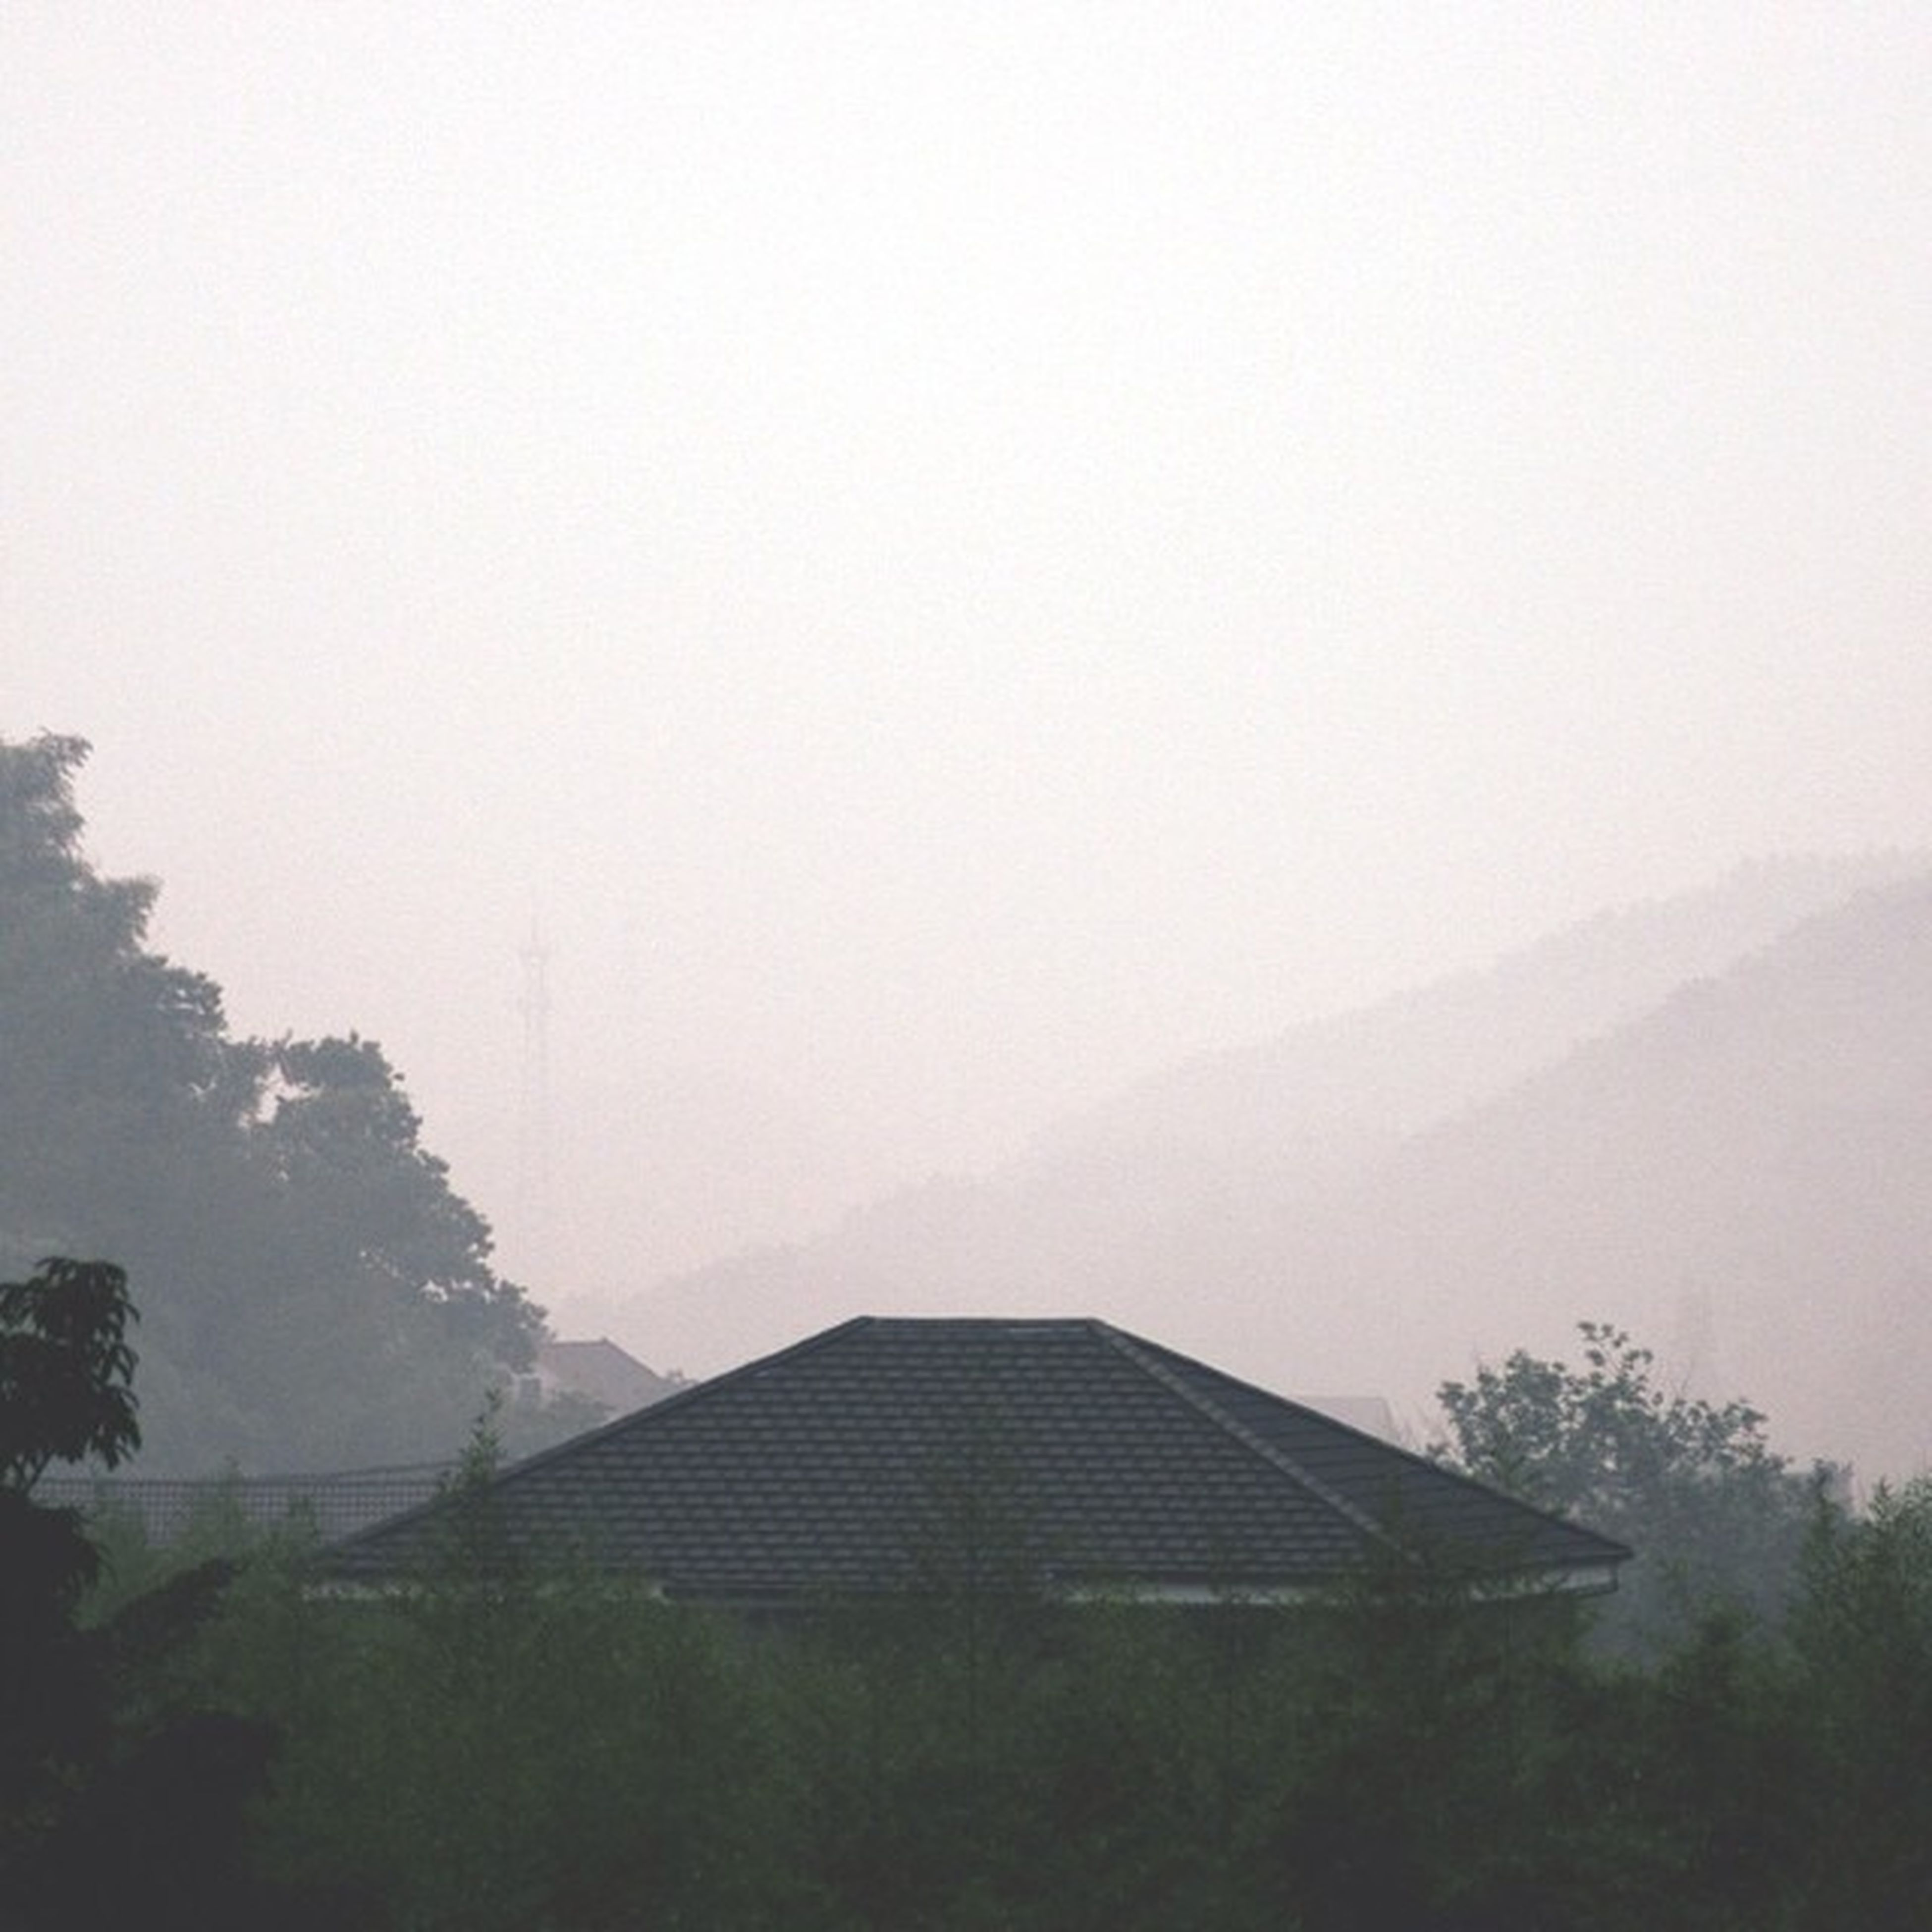 fog, foggy, built structure, architecture, building exterior, weather, copy space, mountain, house, tree, tranquility, nature, landscape, tranquil scene, sky, beauty in nature, scenics, day, no people